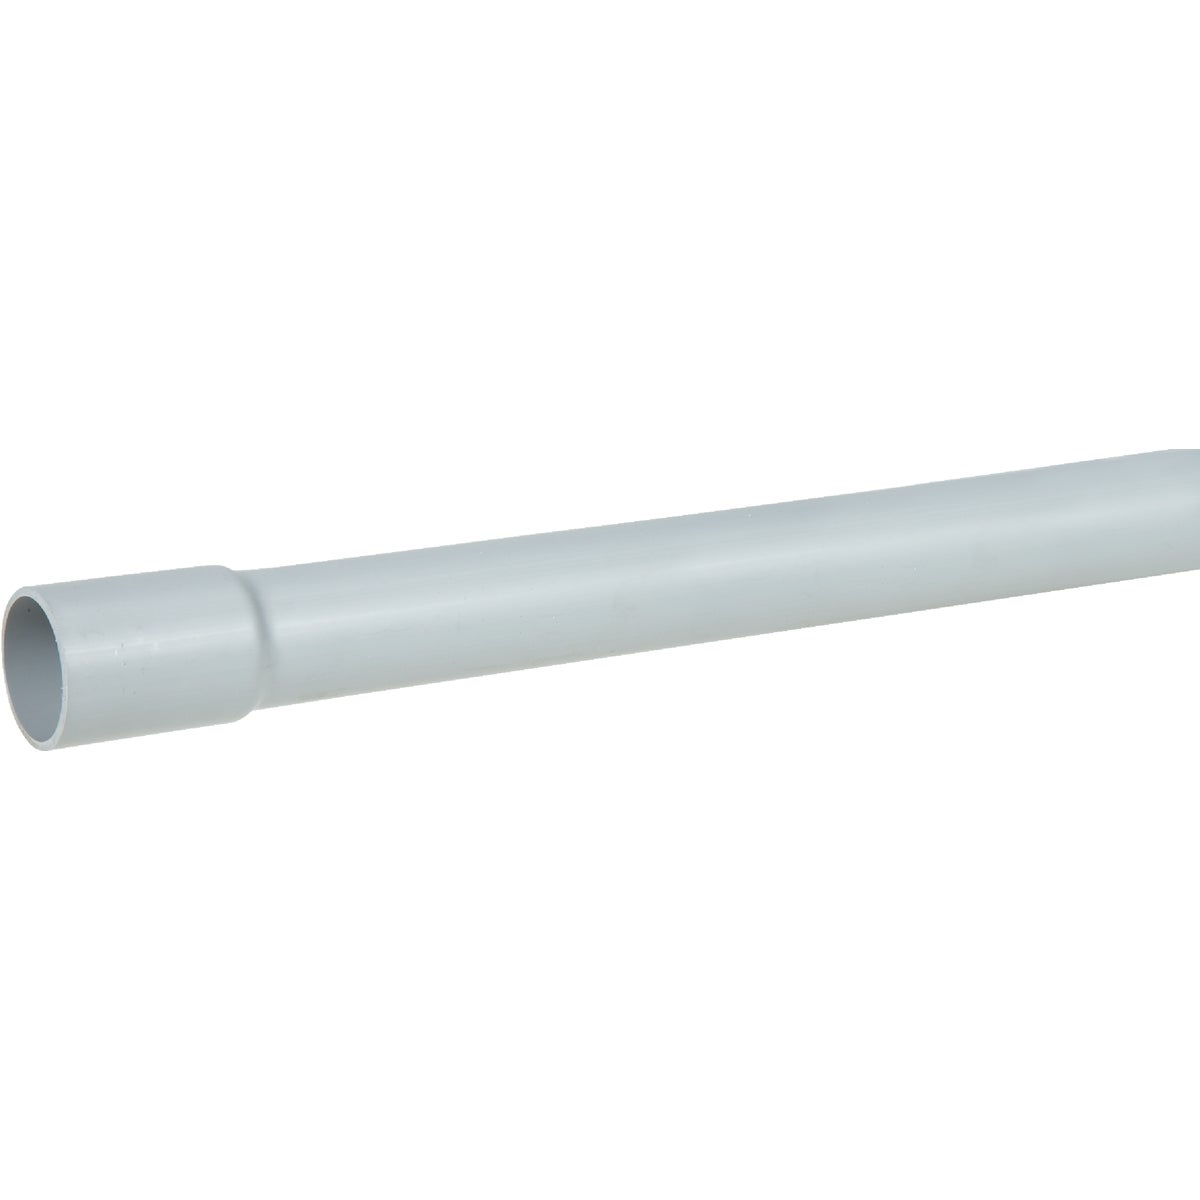 "3/4"" SCH80 10' CONDUIT - 49407-010 by Prime Conduit"